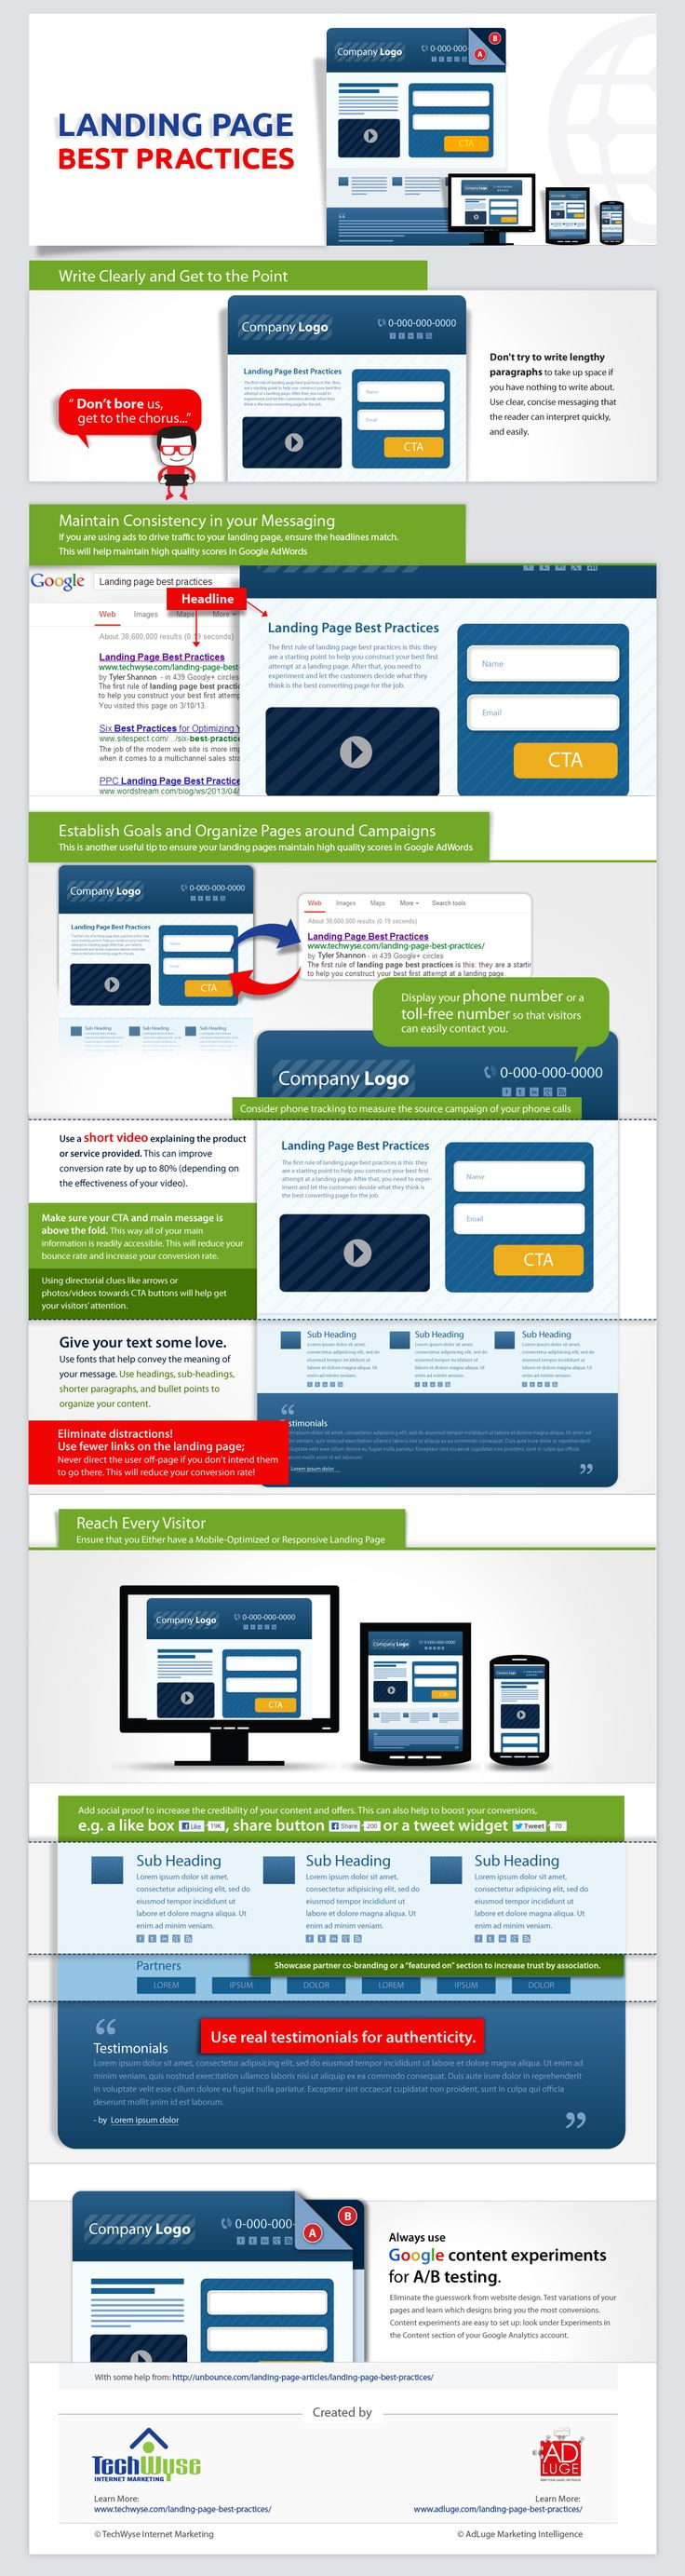 Infographics Landing Page Best Practices